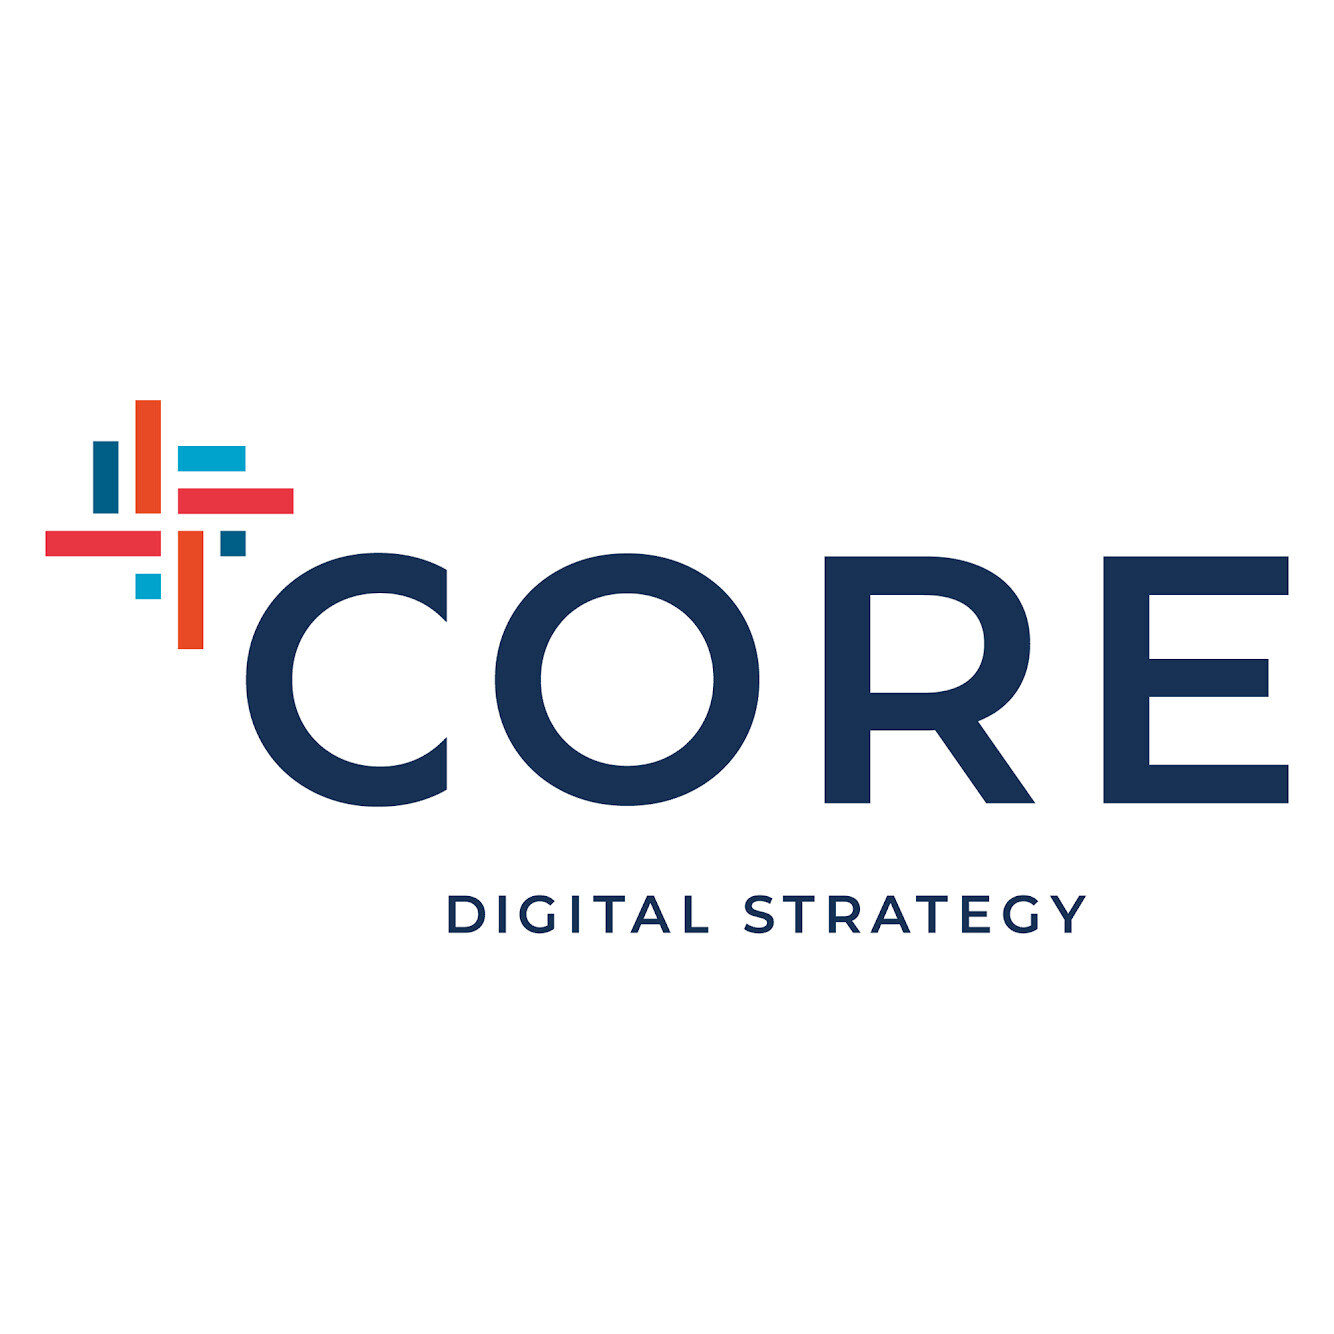 Core Digital Strategy